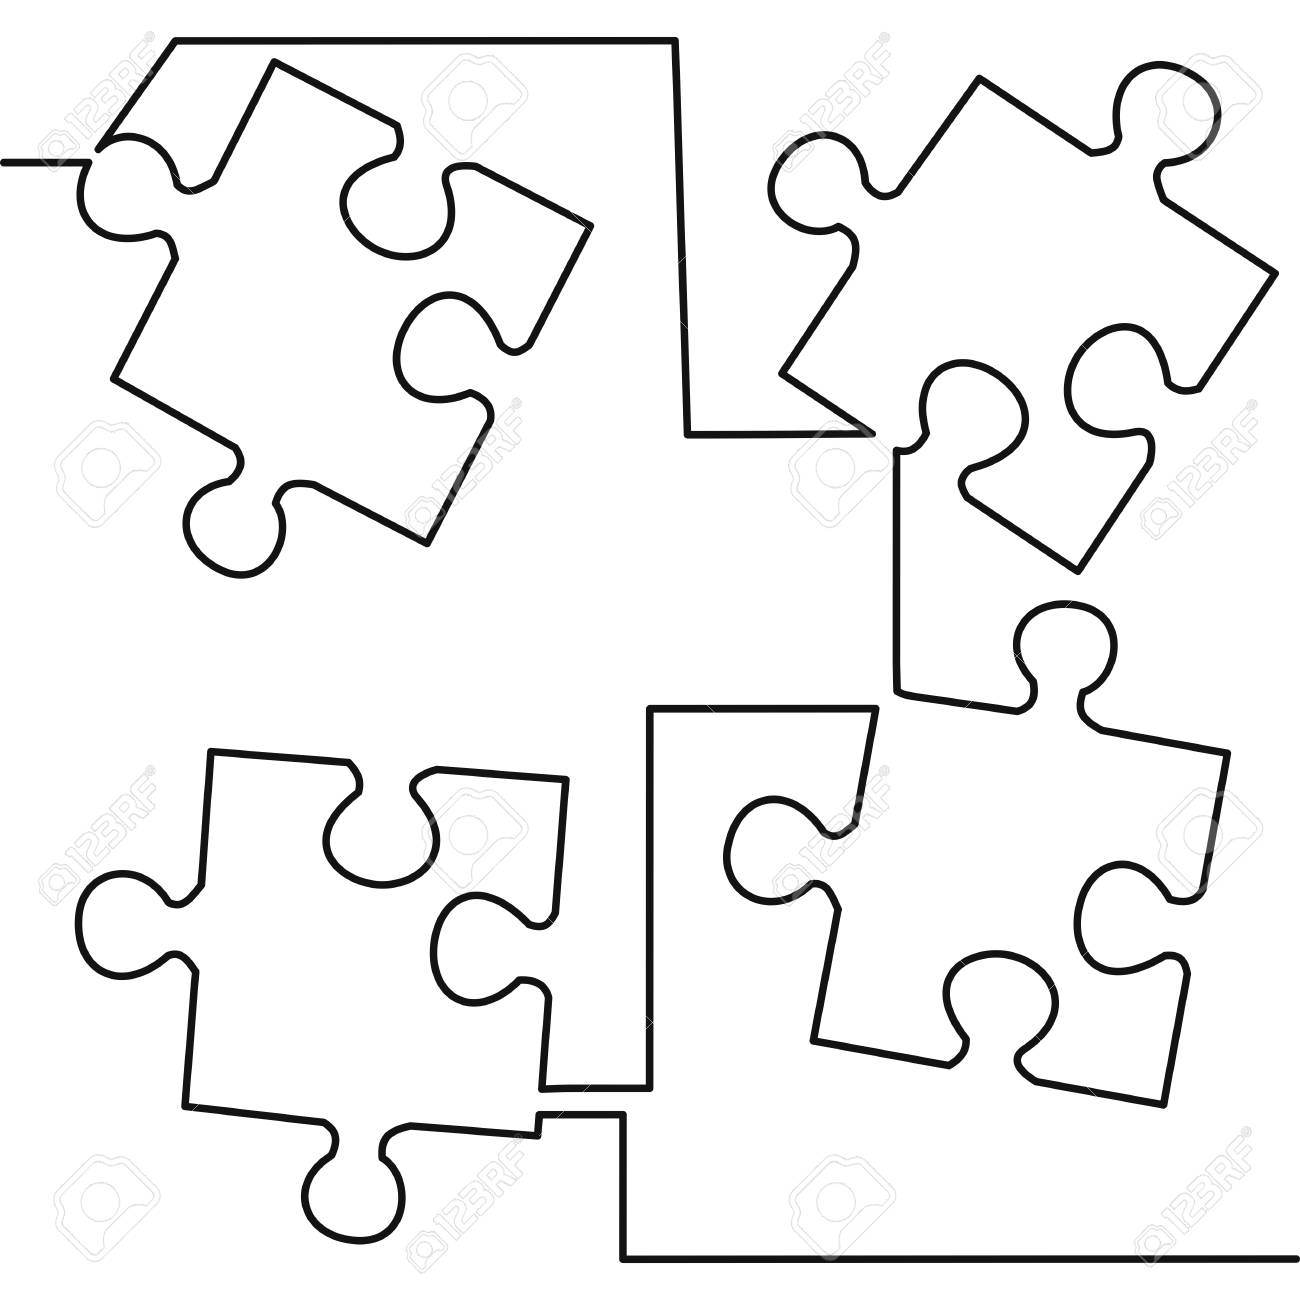 hight resolution of continuous one line drawing of four pieces of jigsaw on white background vector illustration black